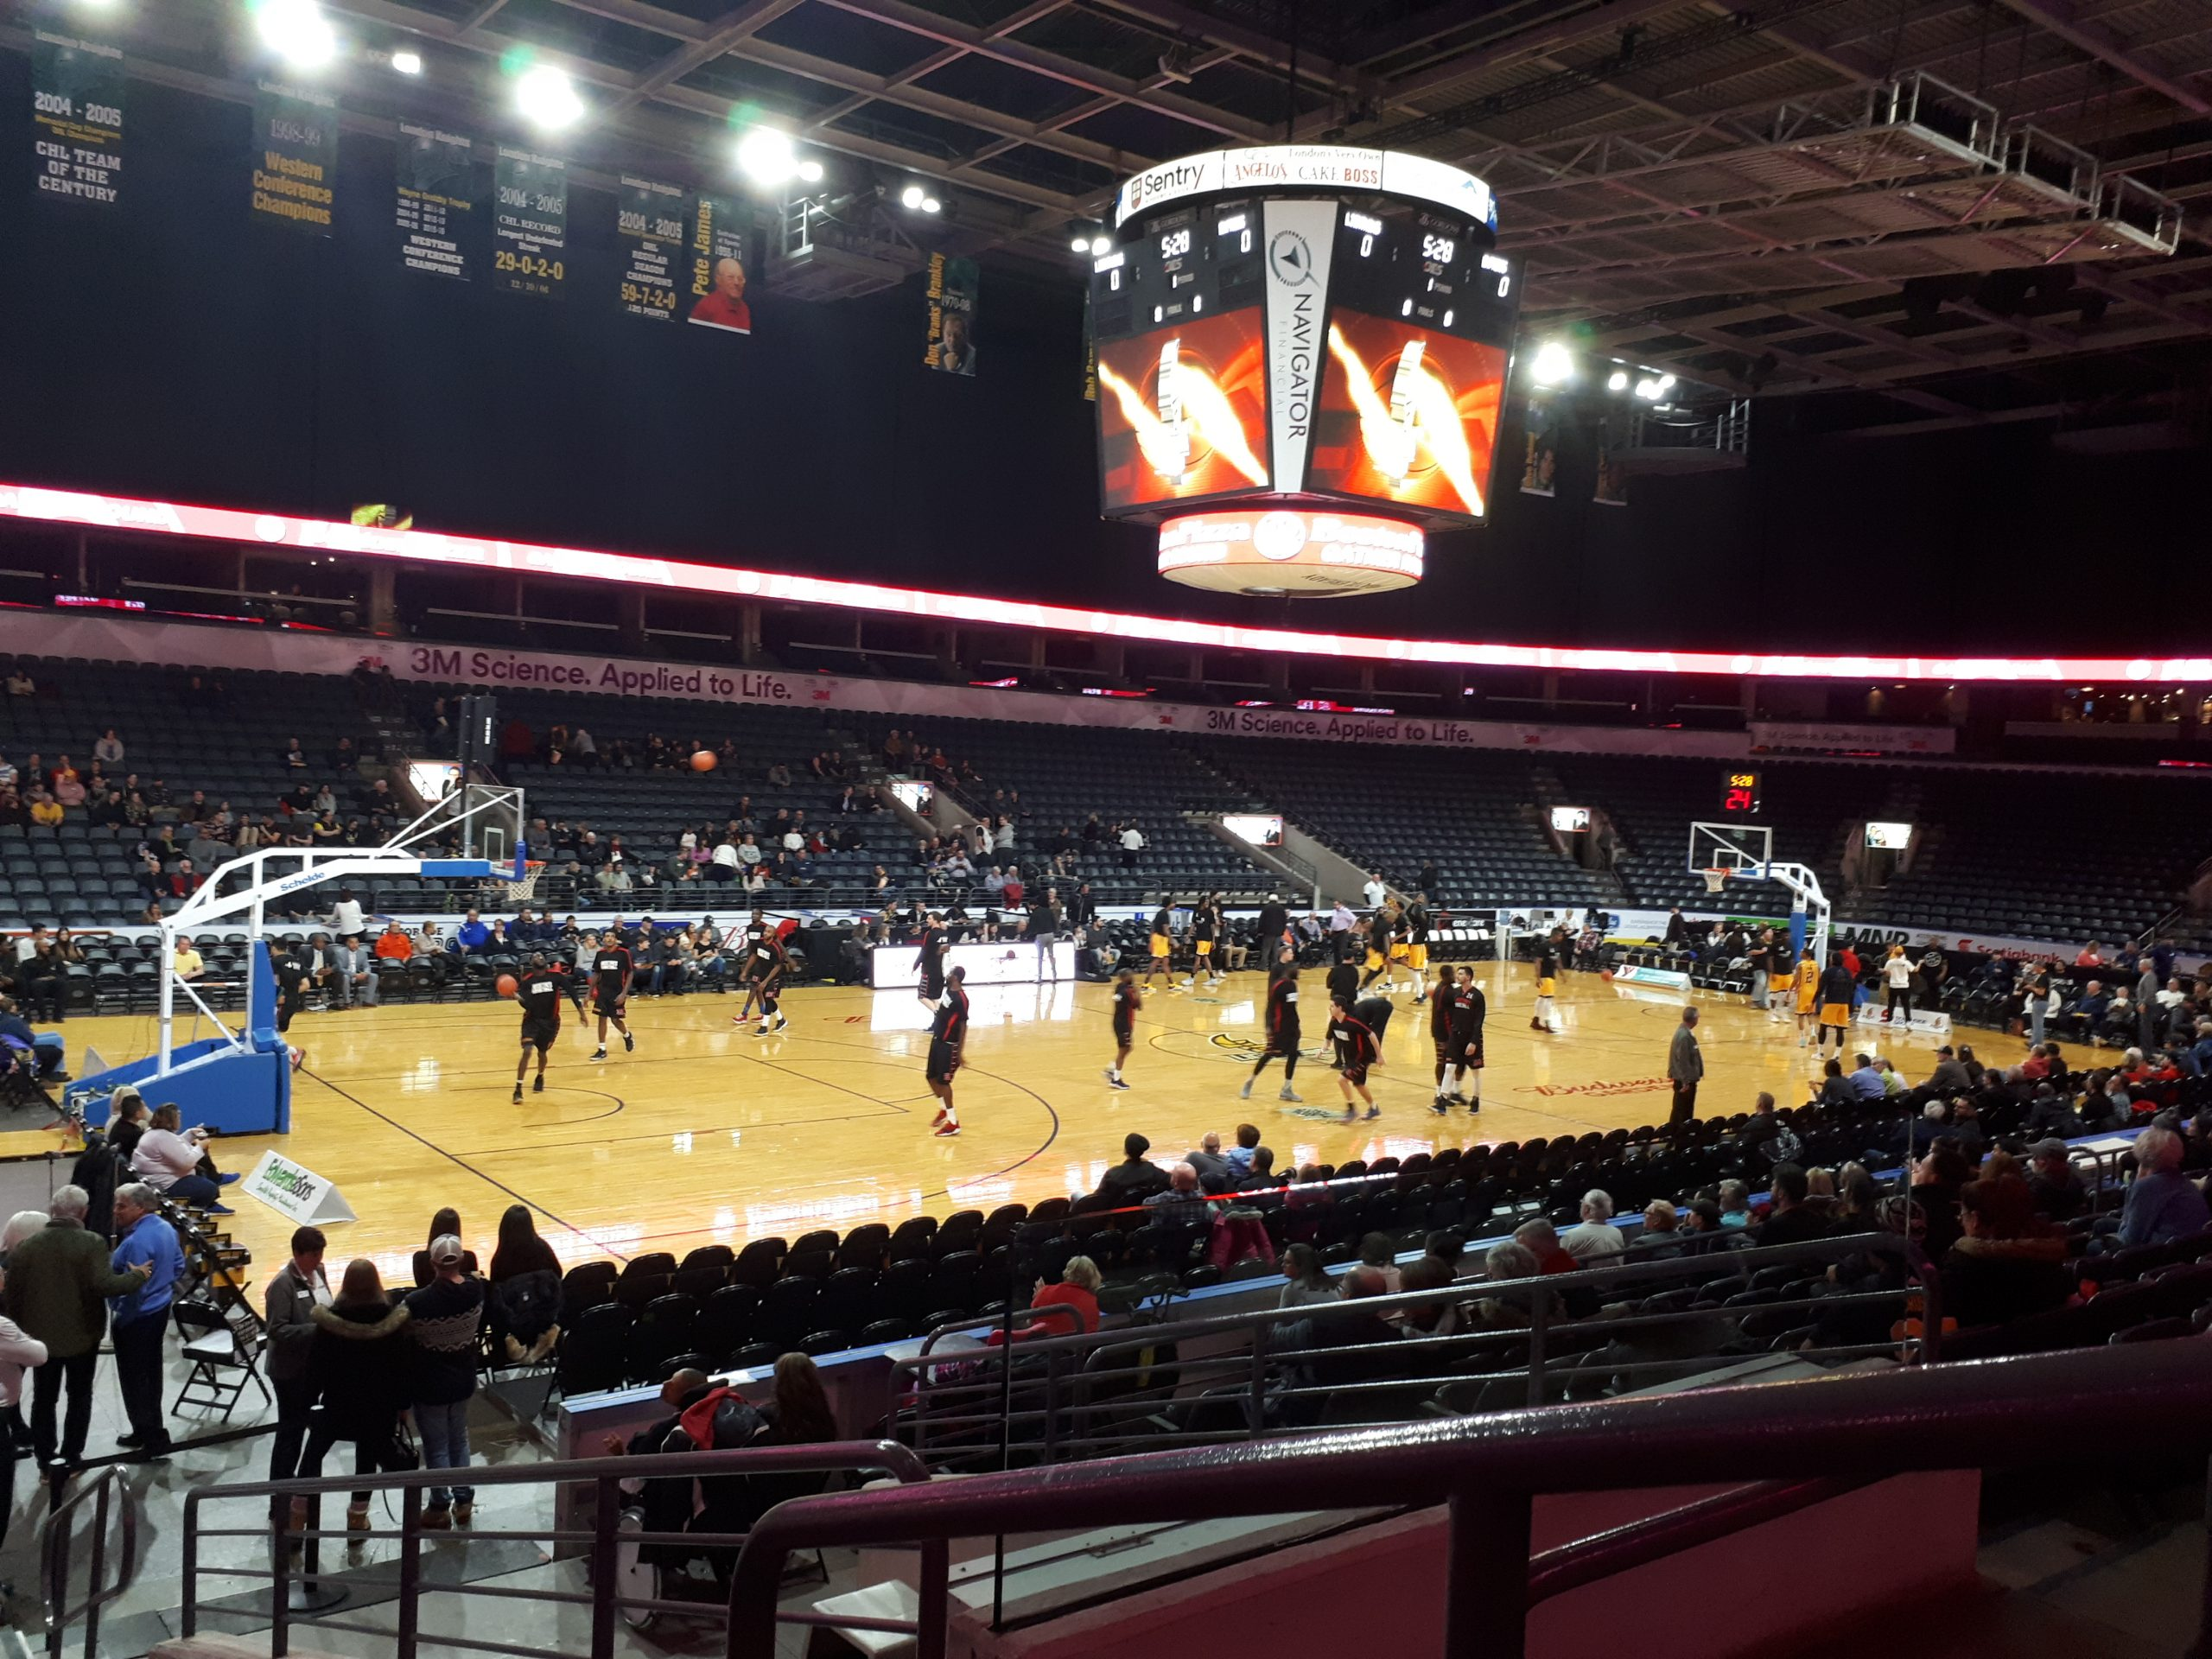 London Lightning come out Victorious in close game vs Windsor